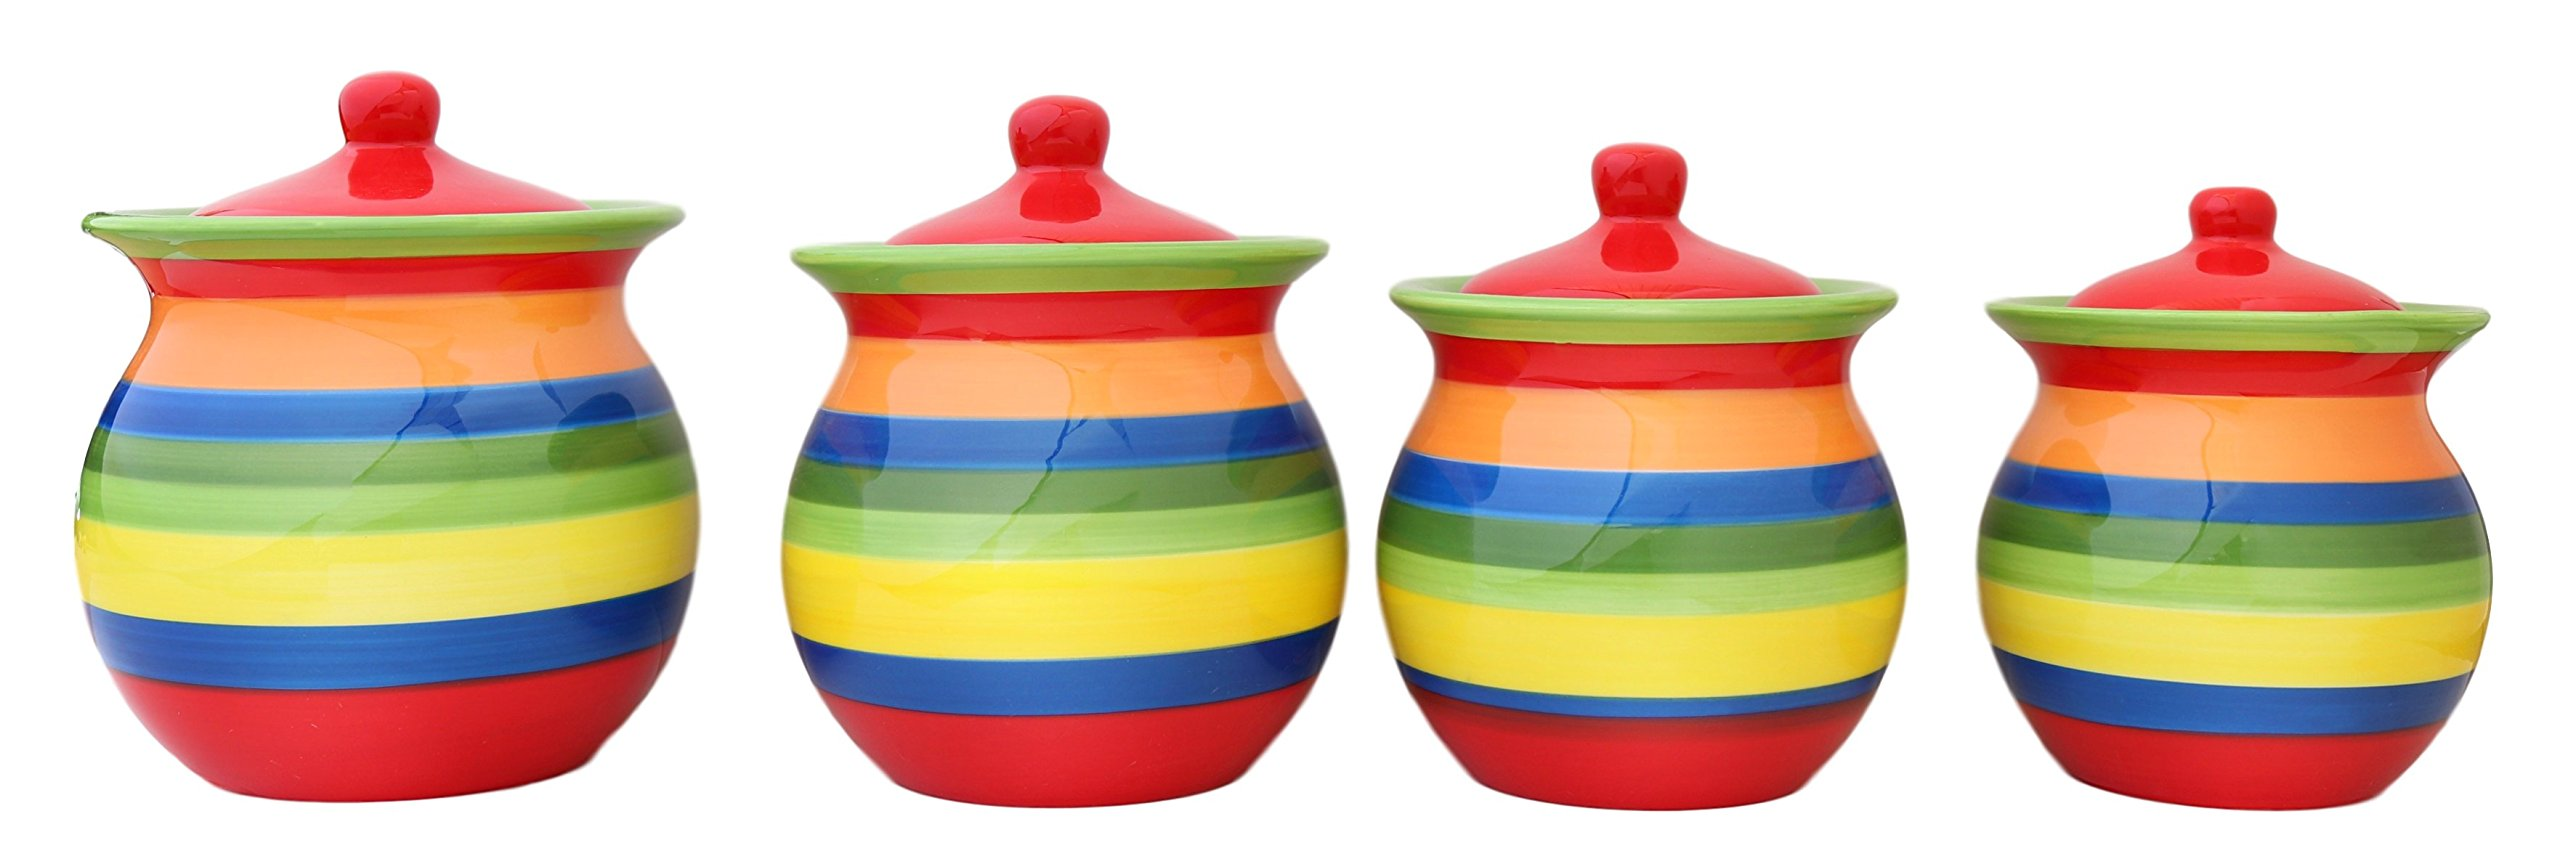 Tuscany Colorful Hand Painted Rainbow Canisters, Set of 4, 81701 by ACK by ACK